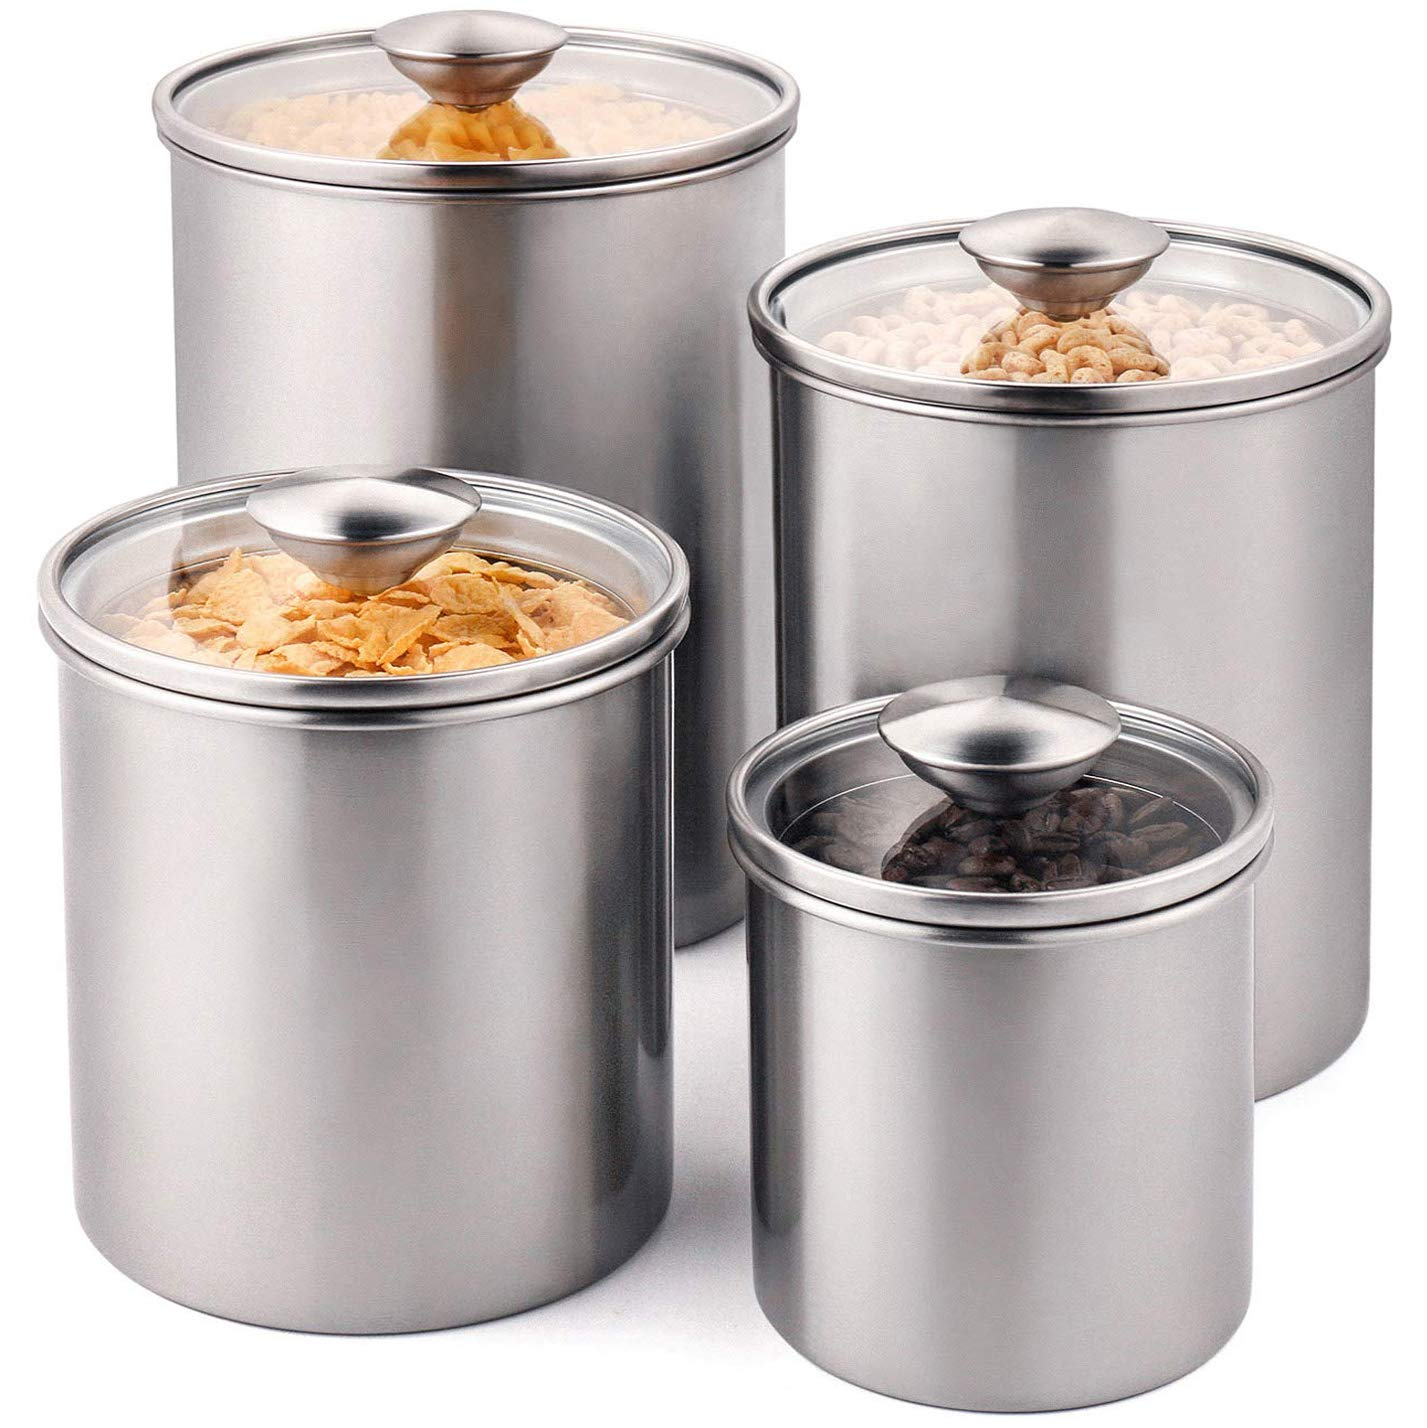 Details about Airtight Canister 4 Piece Stainless Steel Food Storage  Container Kitchen Counter